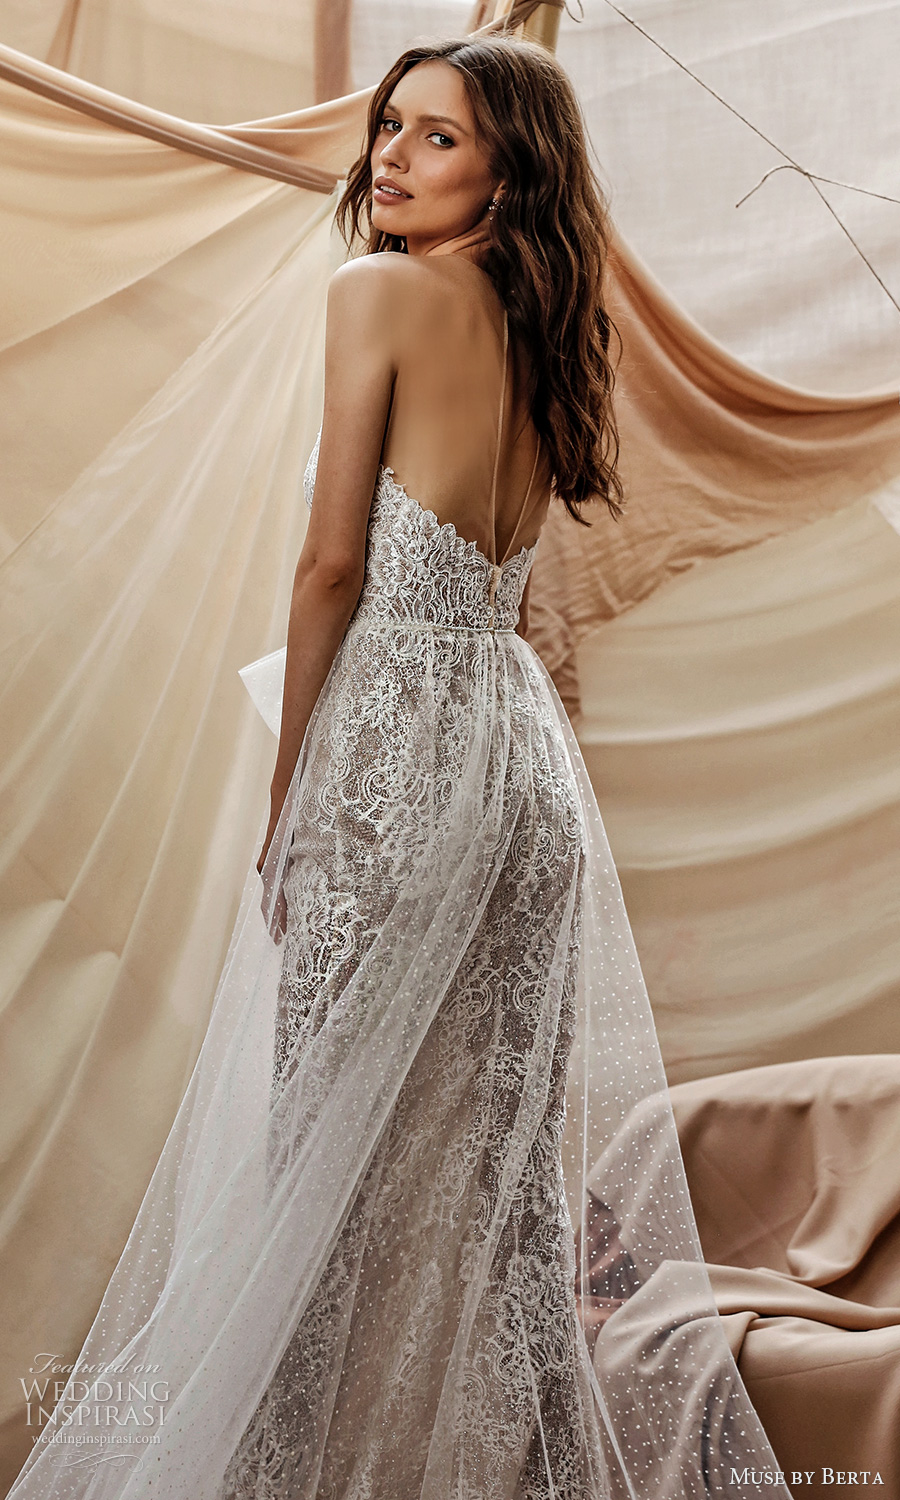 muse by berta spring 2021 bridal sleeveless illusion straps scallop sweetheart neckline fully embellished lace sheath wedding dress sheer a line overskirt chapel train (14) bv